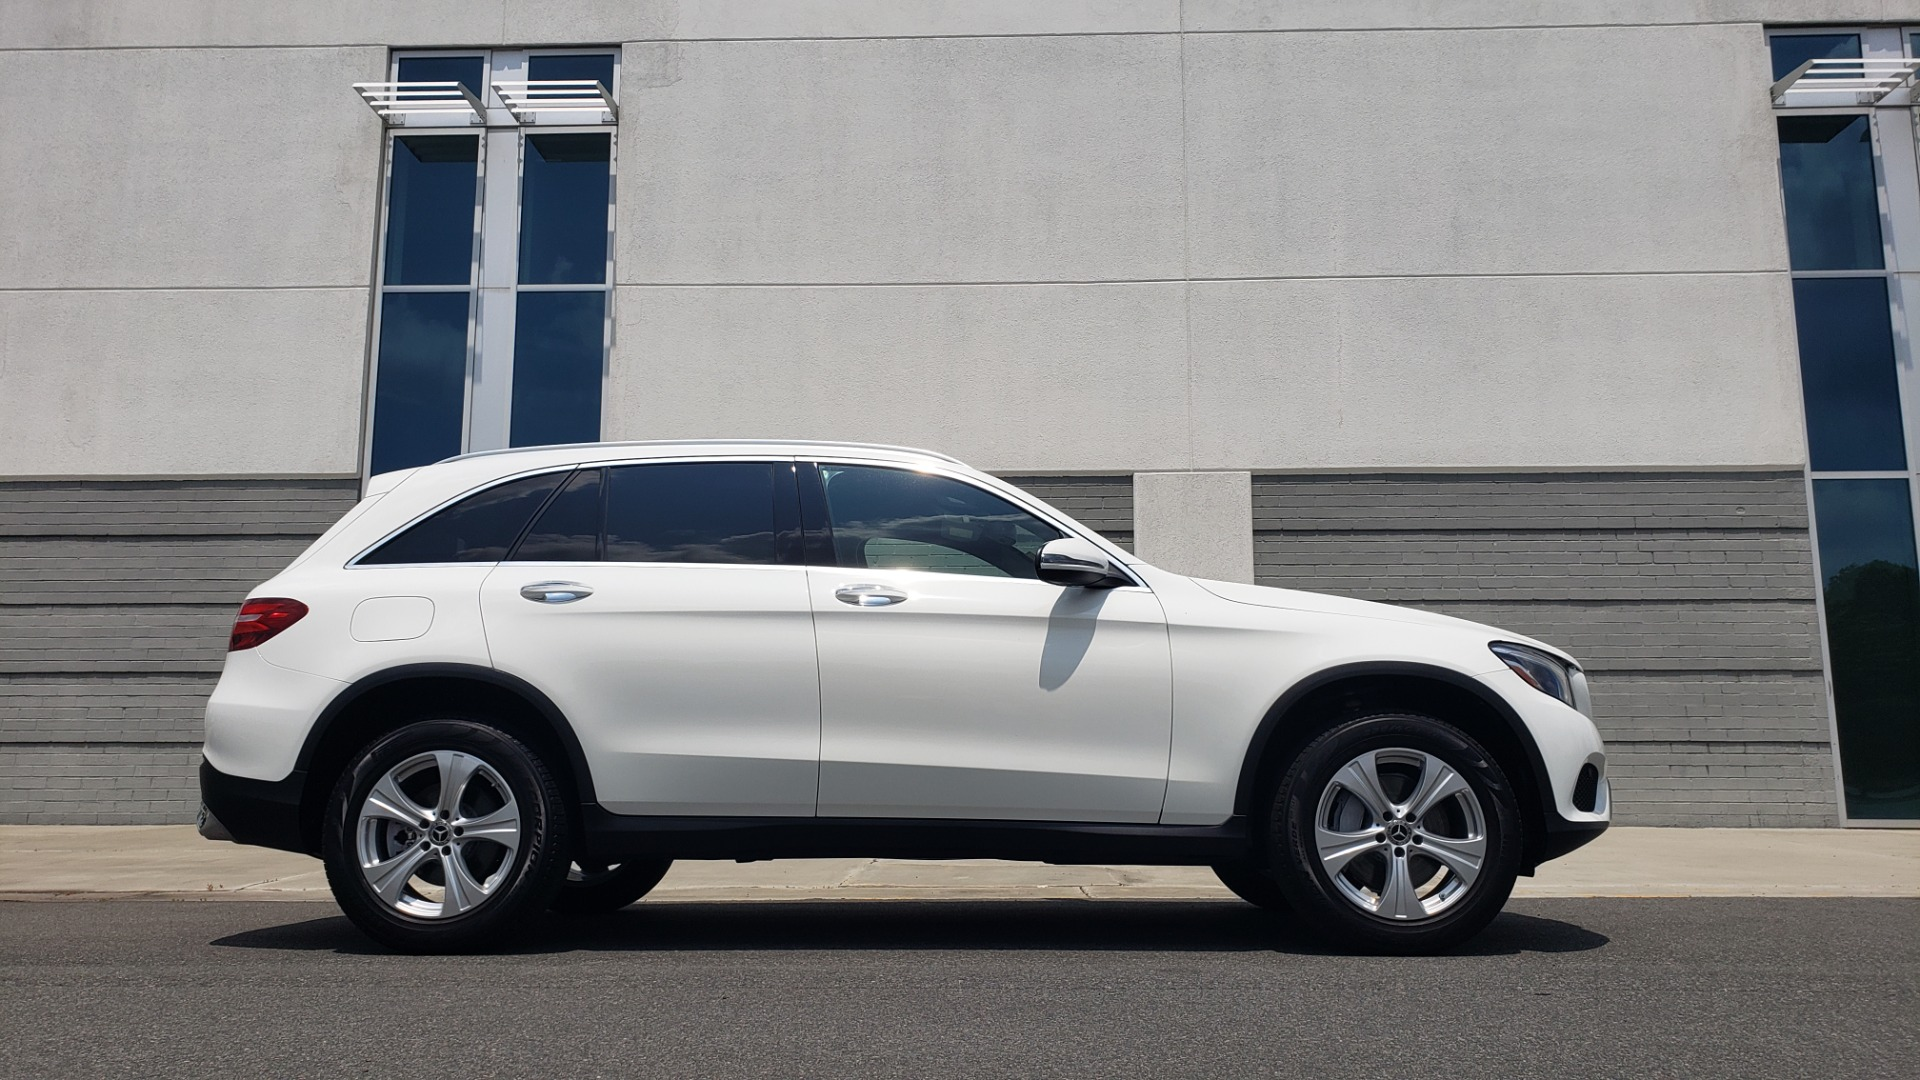 Used 2018 Mercedes-Benz GLC 300 PREMIUM 4MATIC / PANO-ROOF / BURMESTER / REARVIEW for sale $36,295 at Formula Imports in Charlotte NC 28227 9